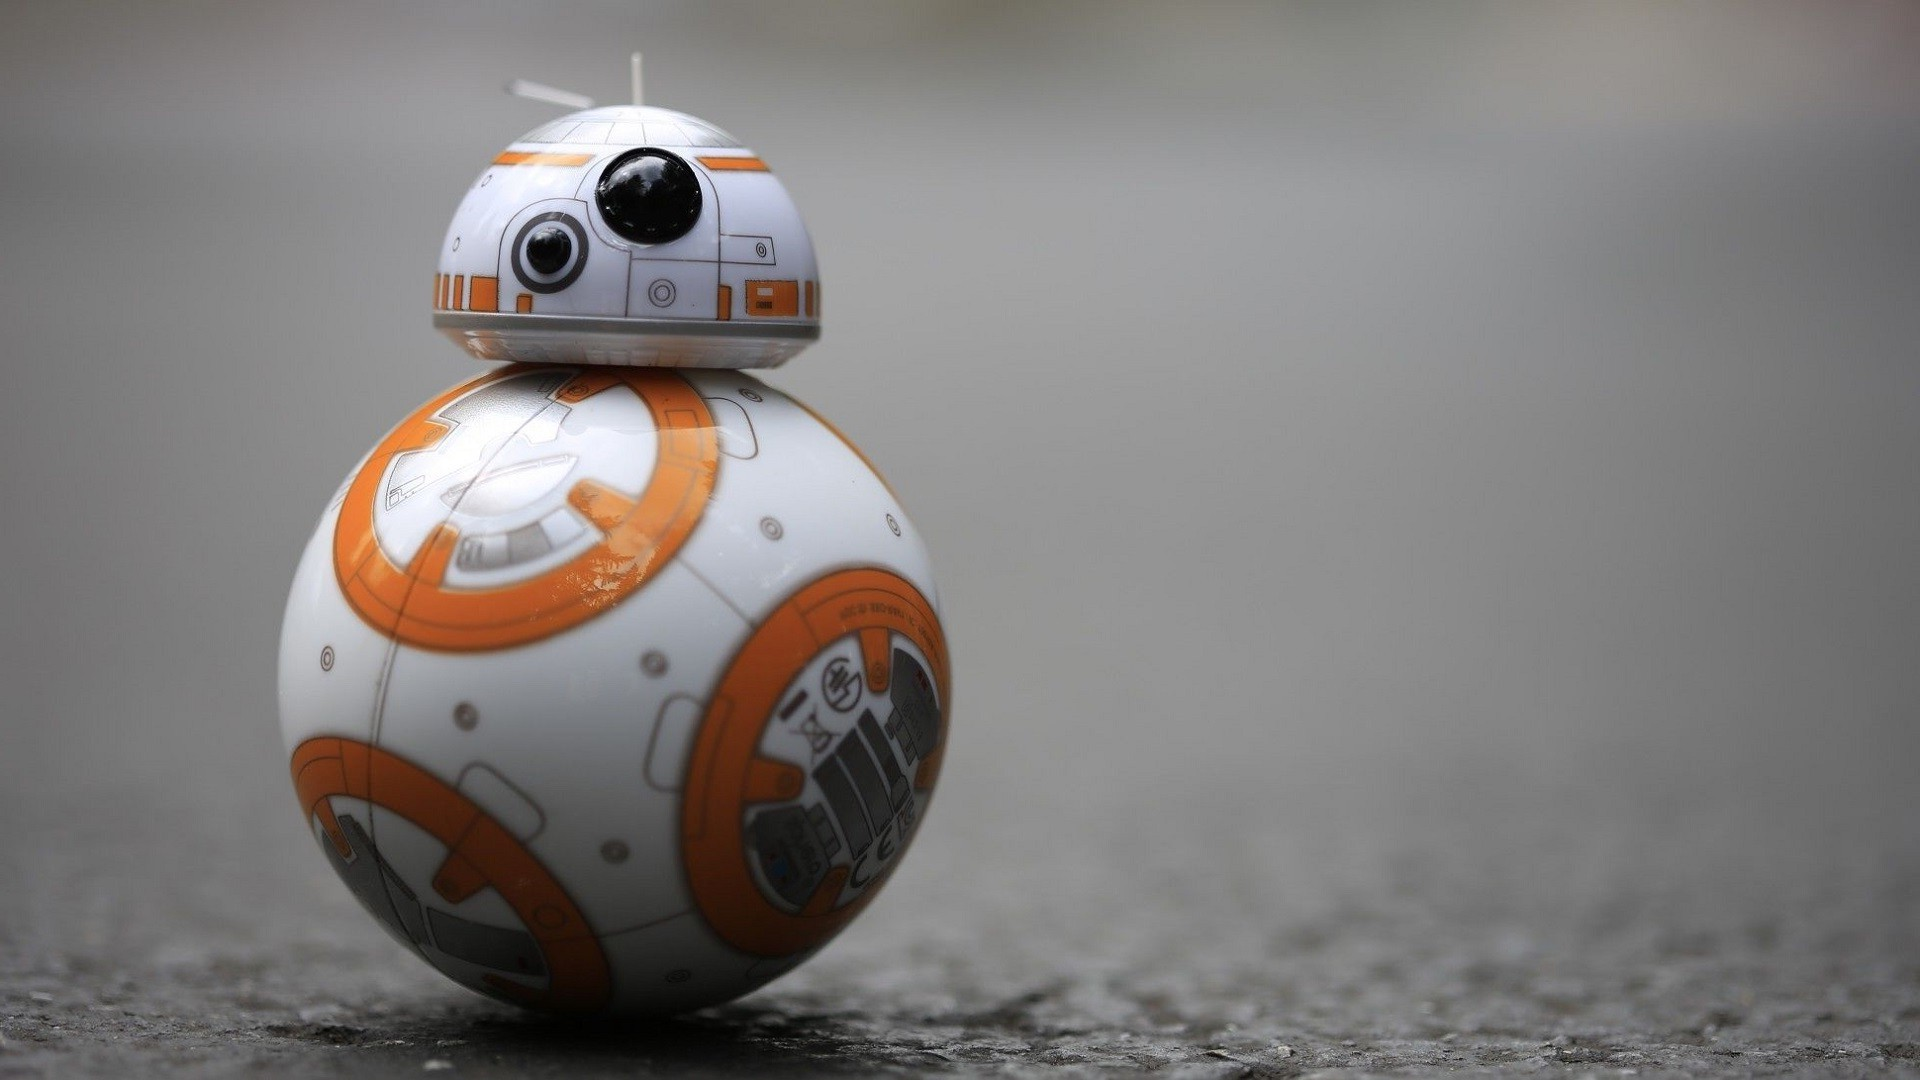 1920x1080 BB 8, Star Wars, Star Wars: Episode VII The Force Awakens Wallpapers HD /  Desktop and Mobile Backgrounds